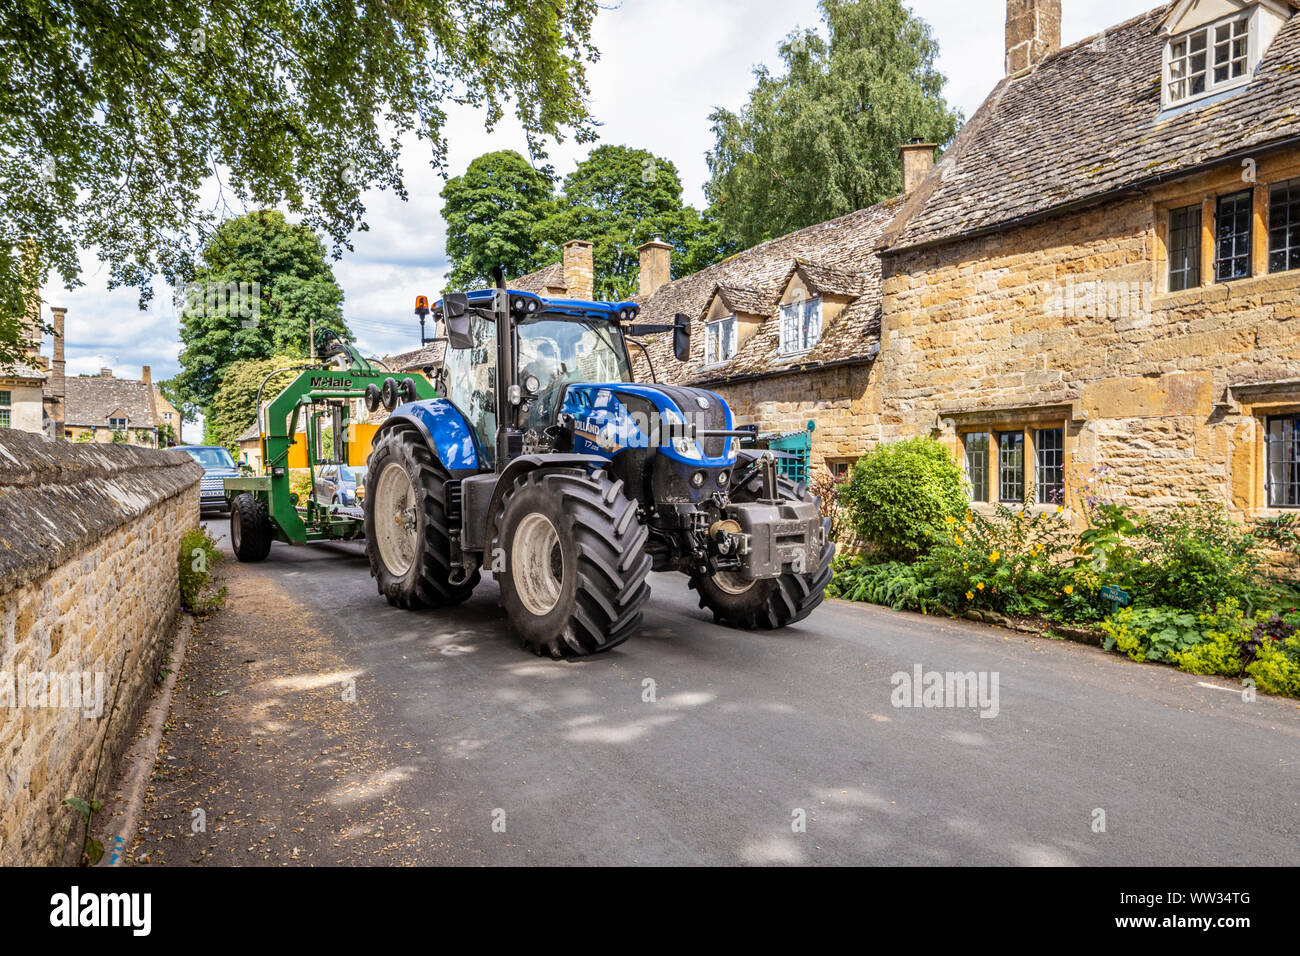 Heavy agricultural machinery negotiating a narrow lane in the Cotswold village of Snowshill, Gloucestershire UK Stock Photo